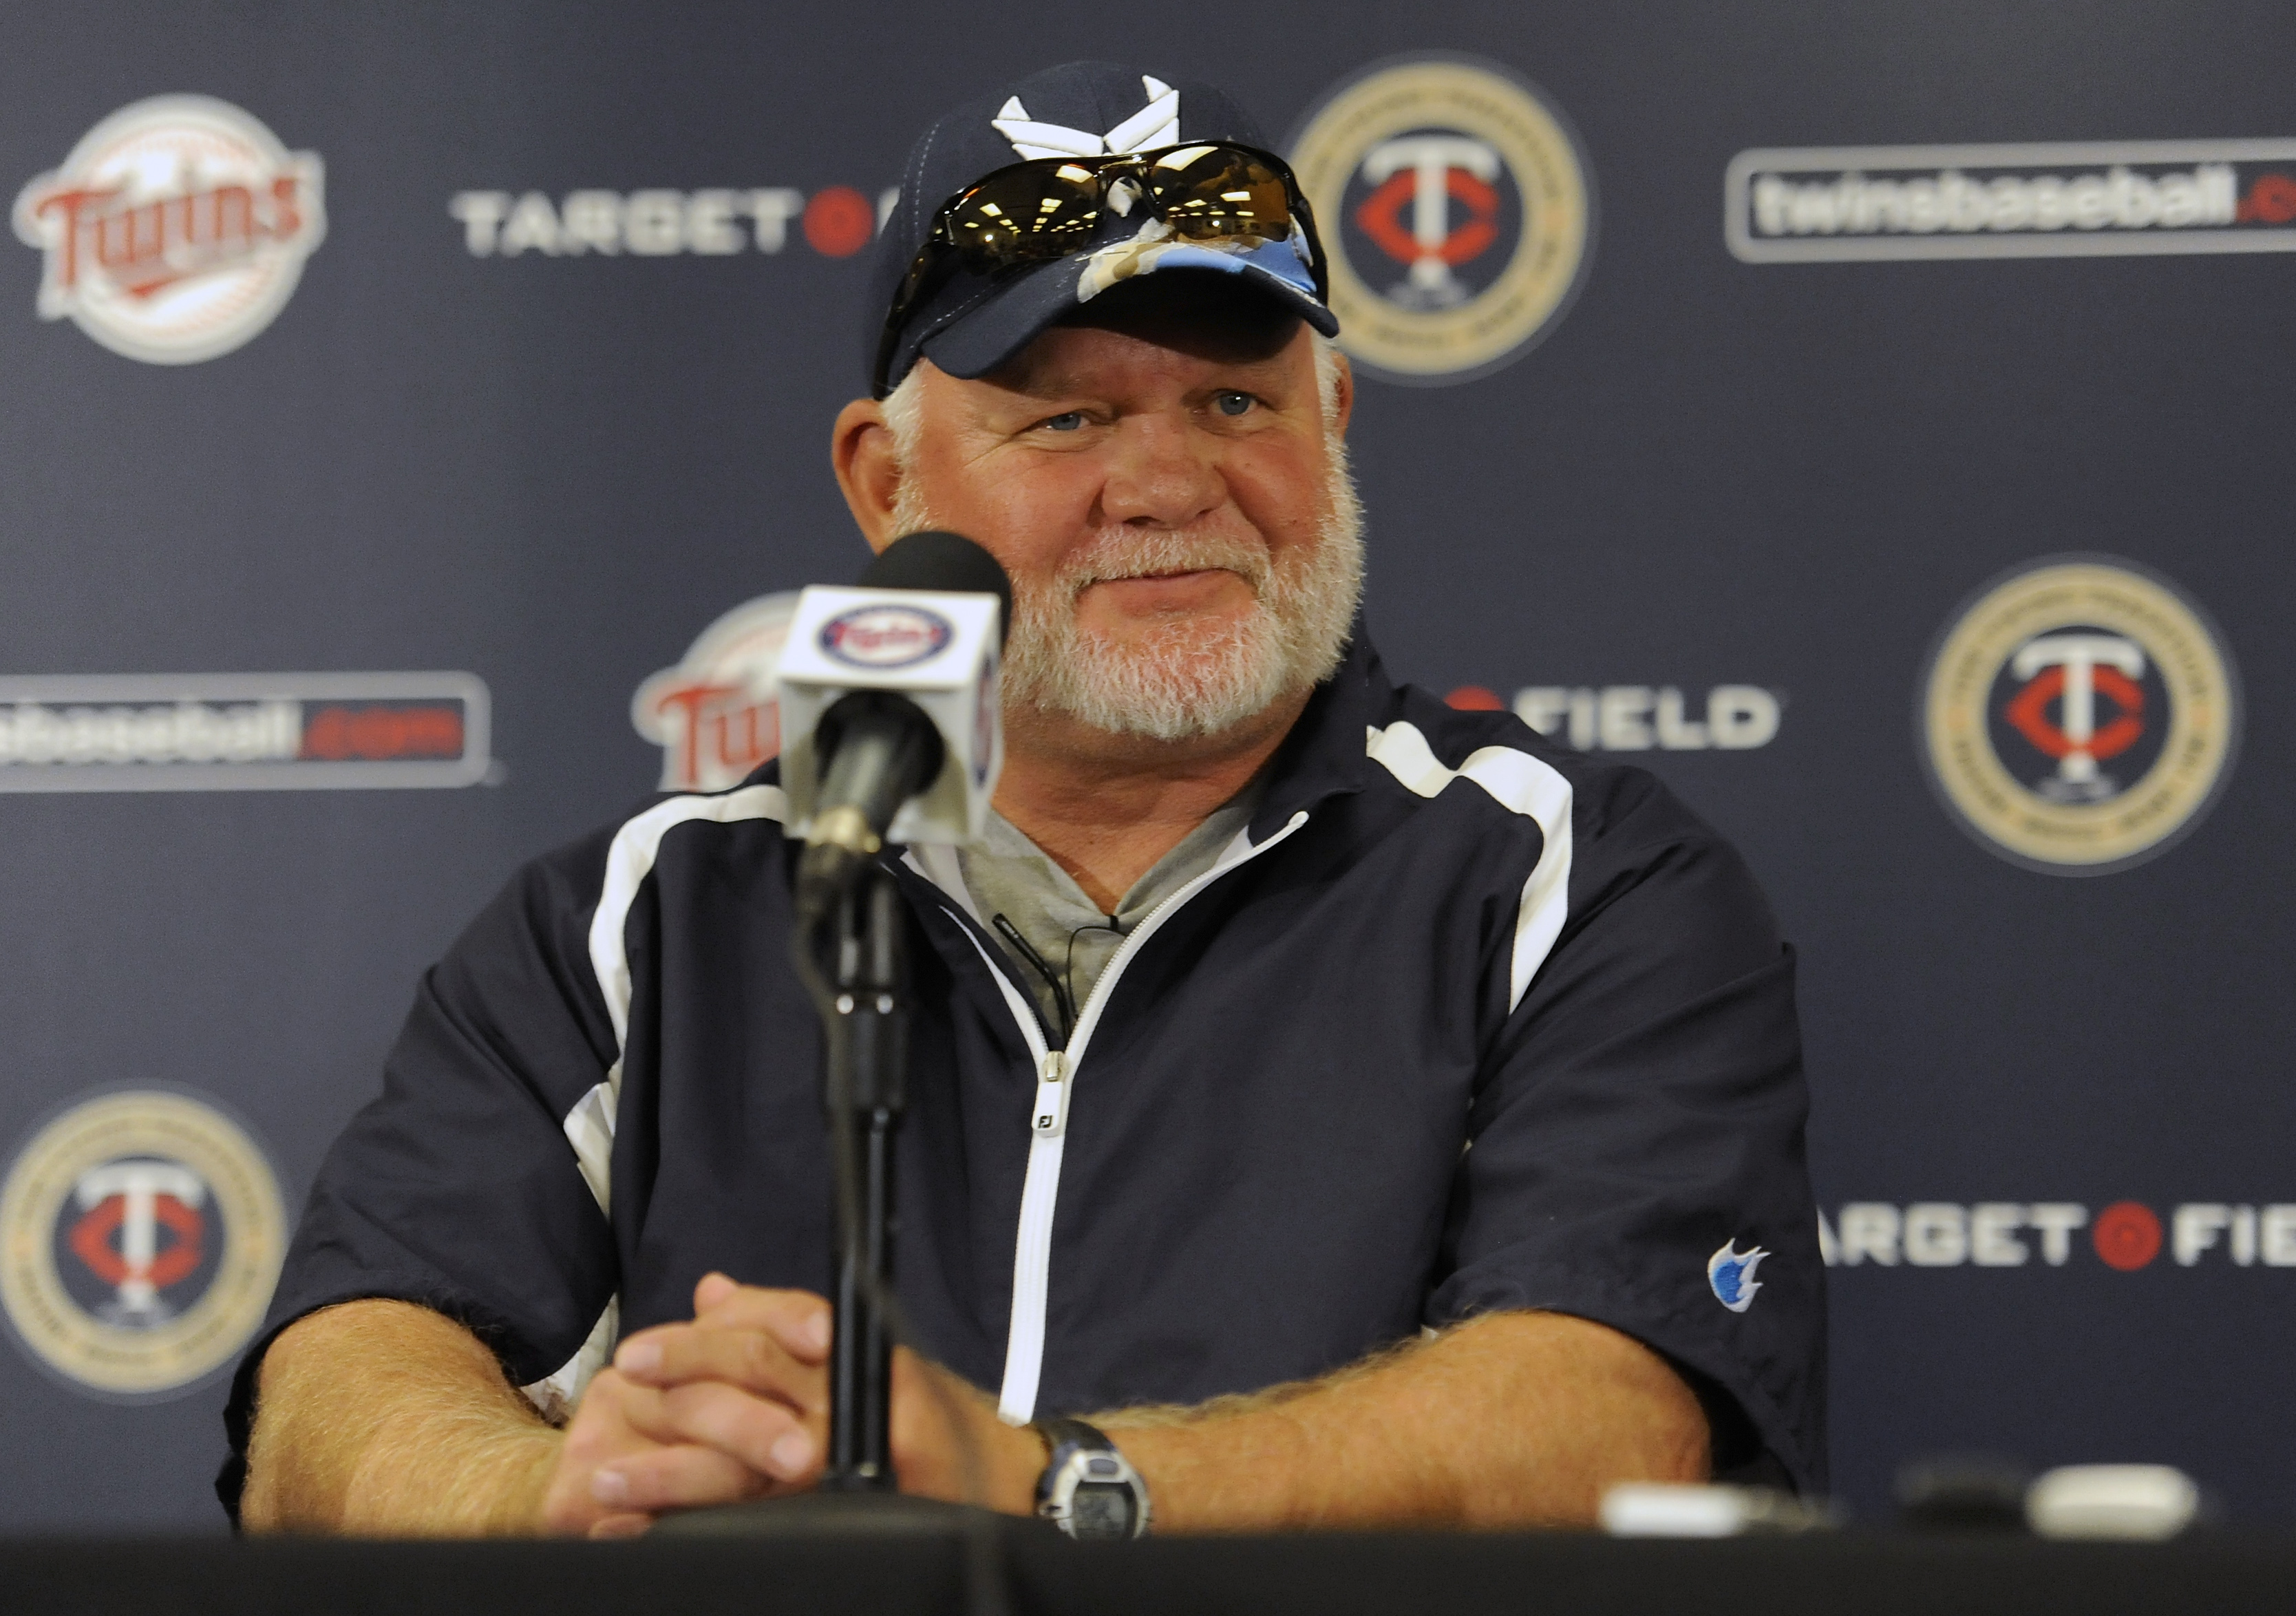 What if it turns out Gardy actually likes rare craft beers and expensive wine?